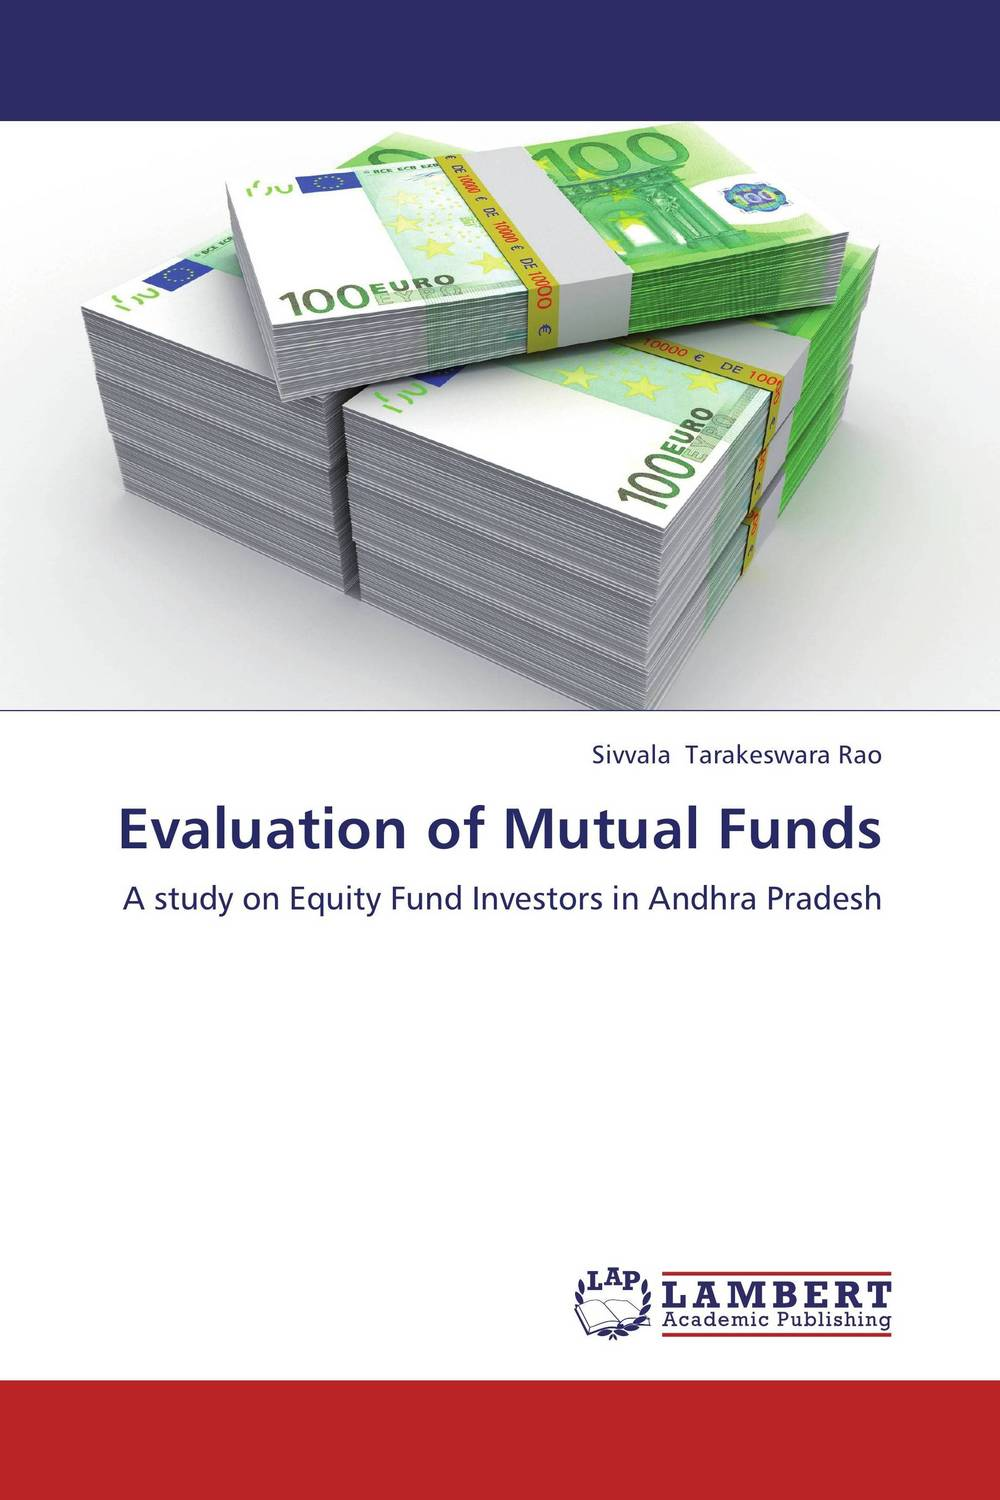 Evaluation of Mutual Funds john haslem a mutual funds portfolio structures analysis management and stewardship